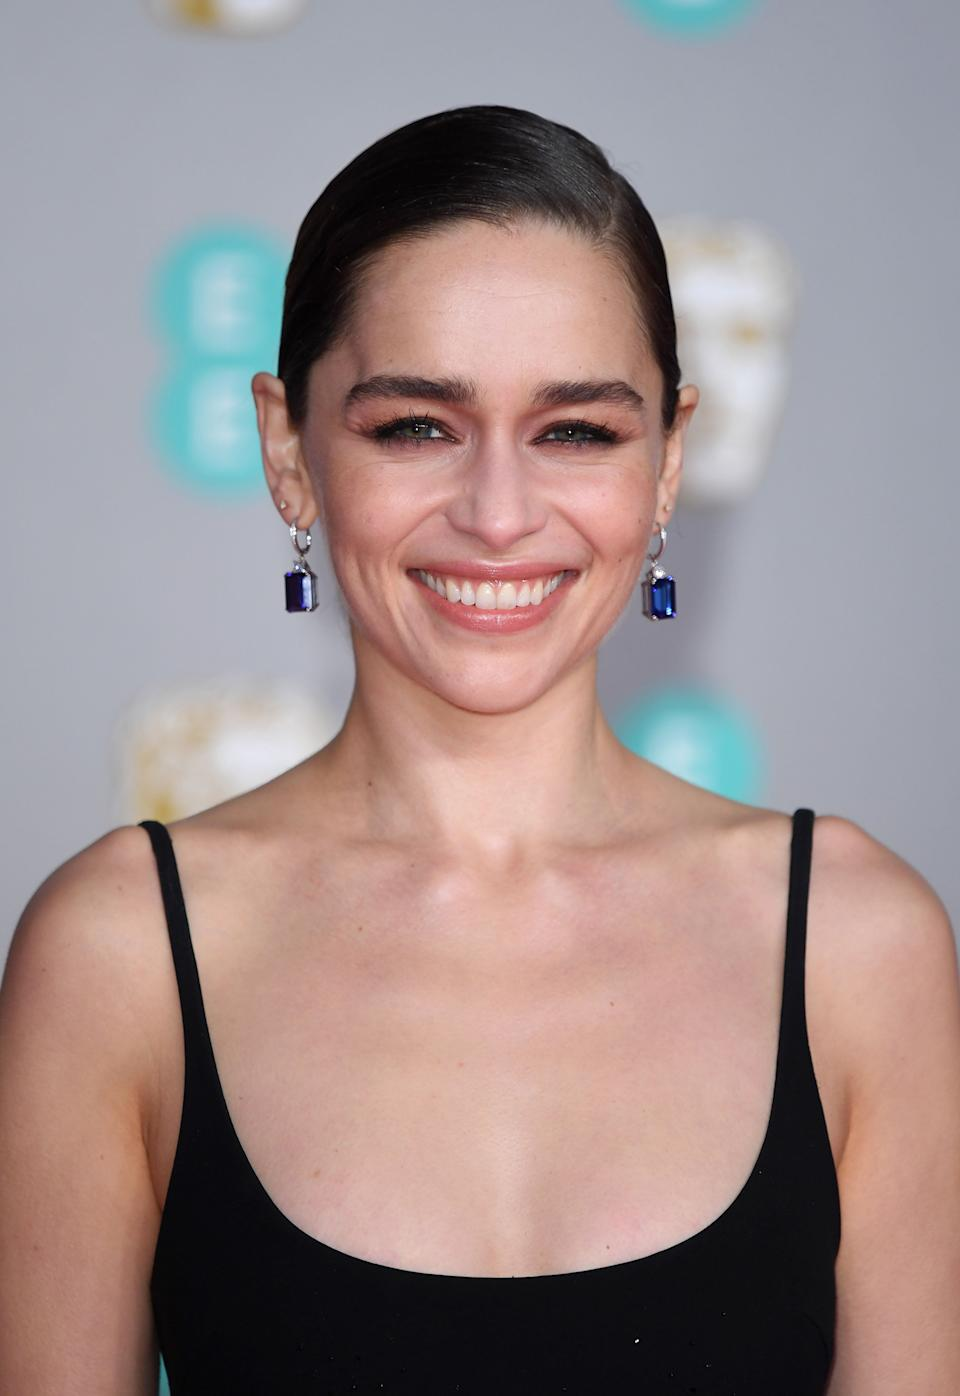 Emilia Clarke at the Baftas earlier this year (Photo: Karwai Tang via Getty Images)